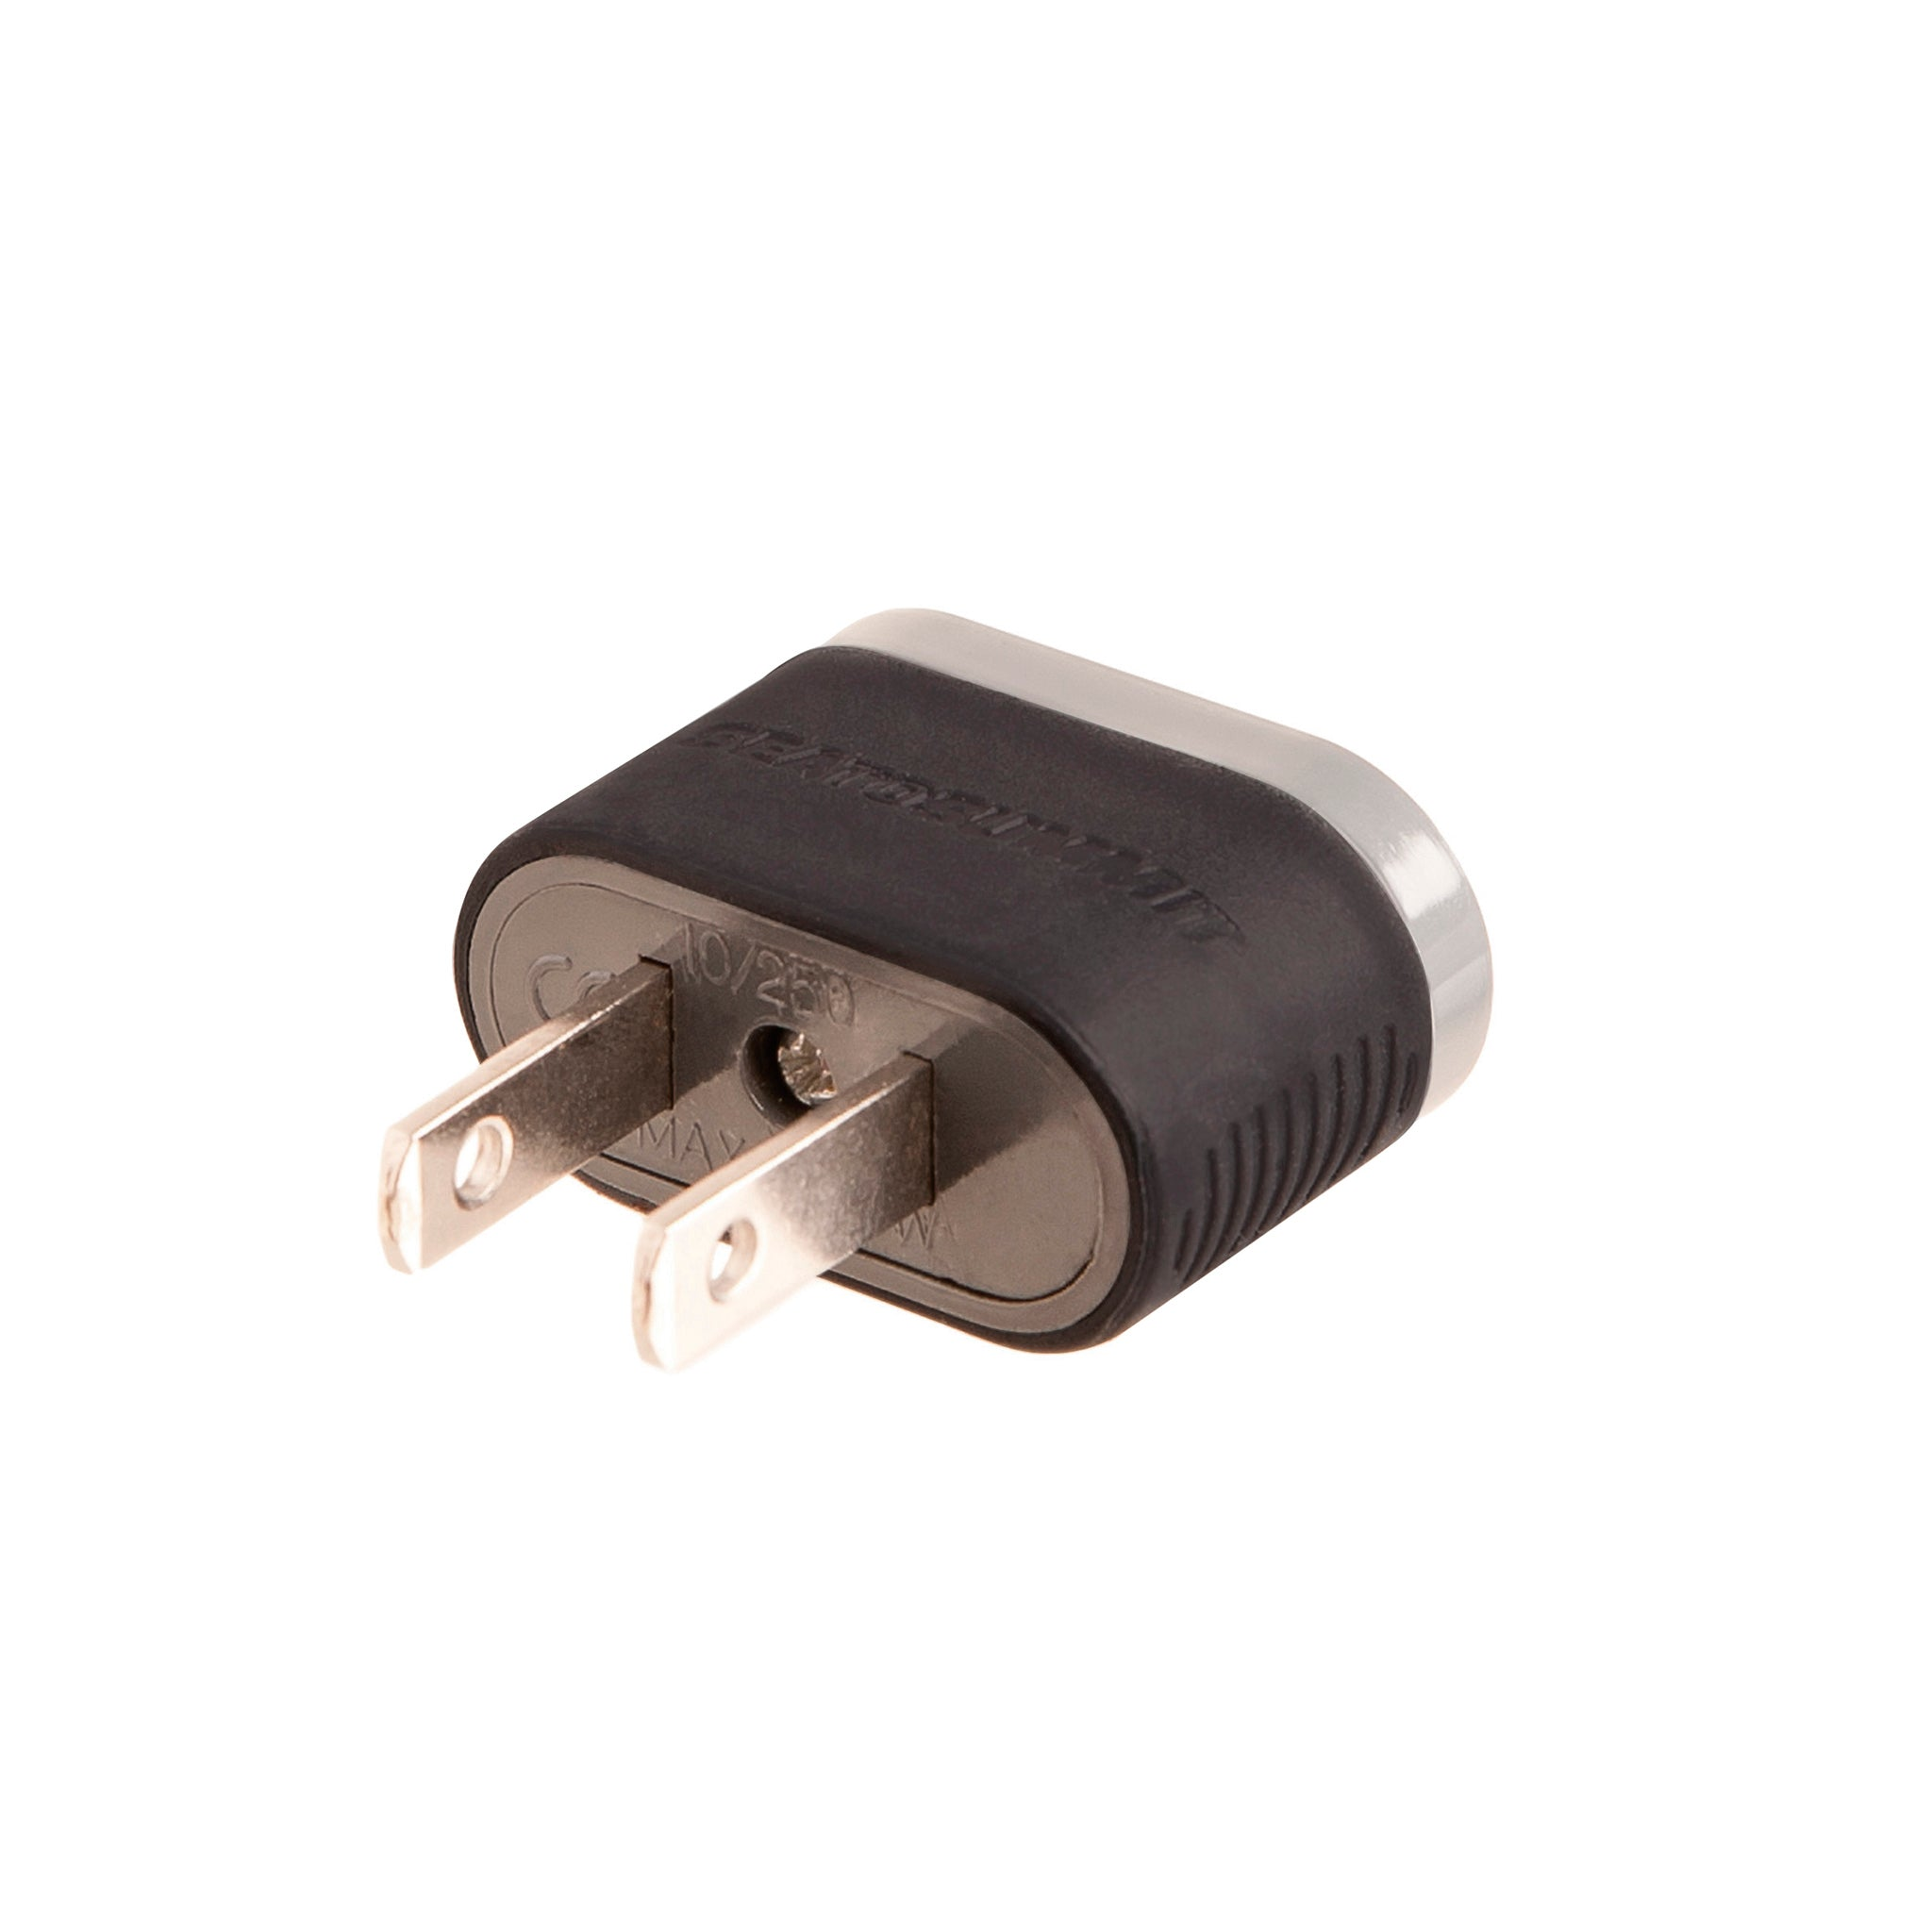 Travelling Light Travel Adapter _ plug converter _ America Canada North America